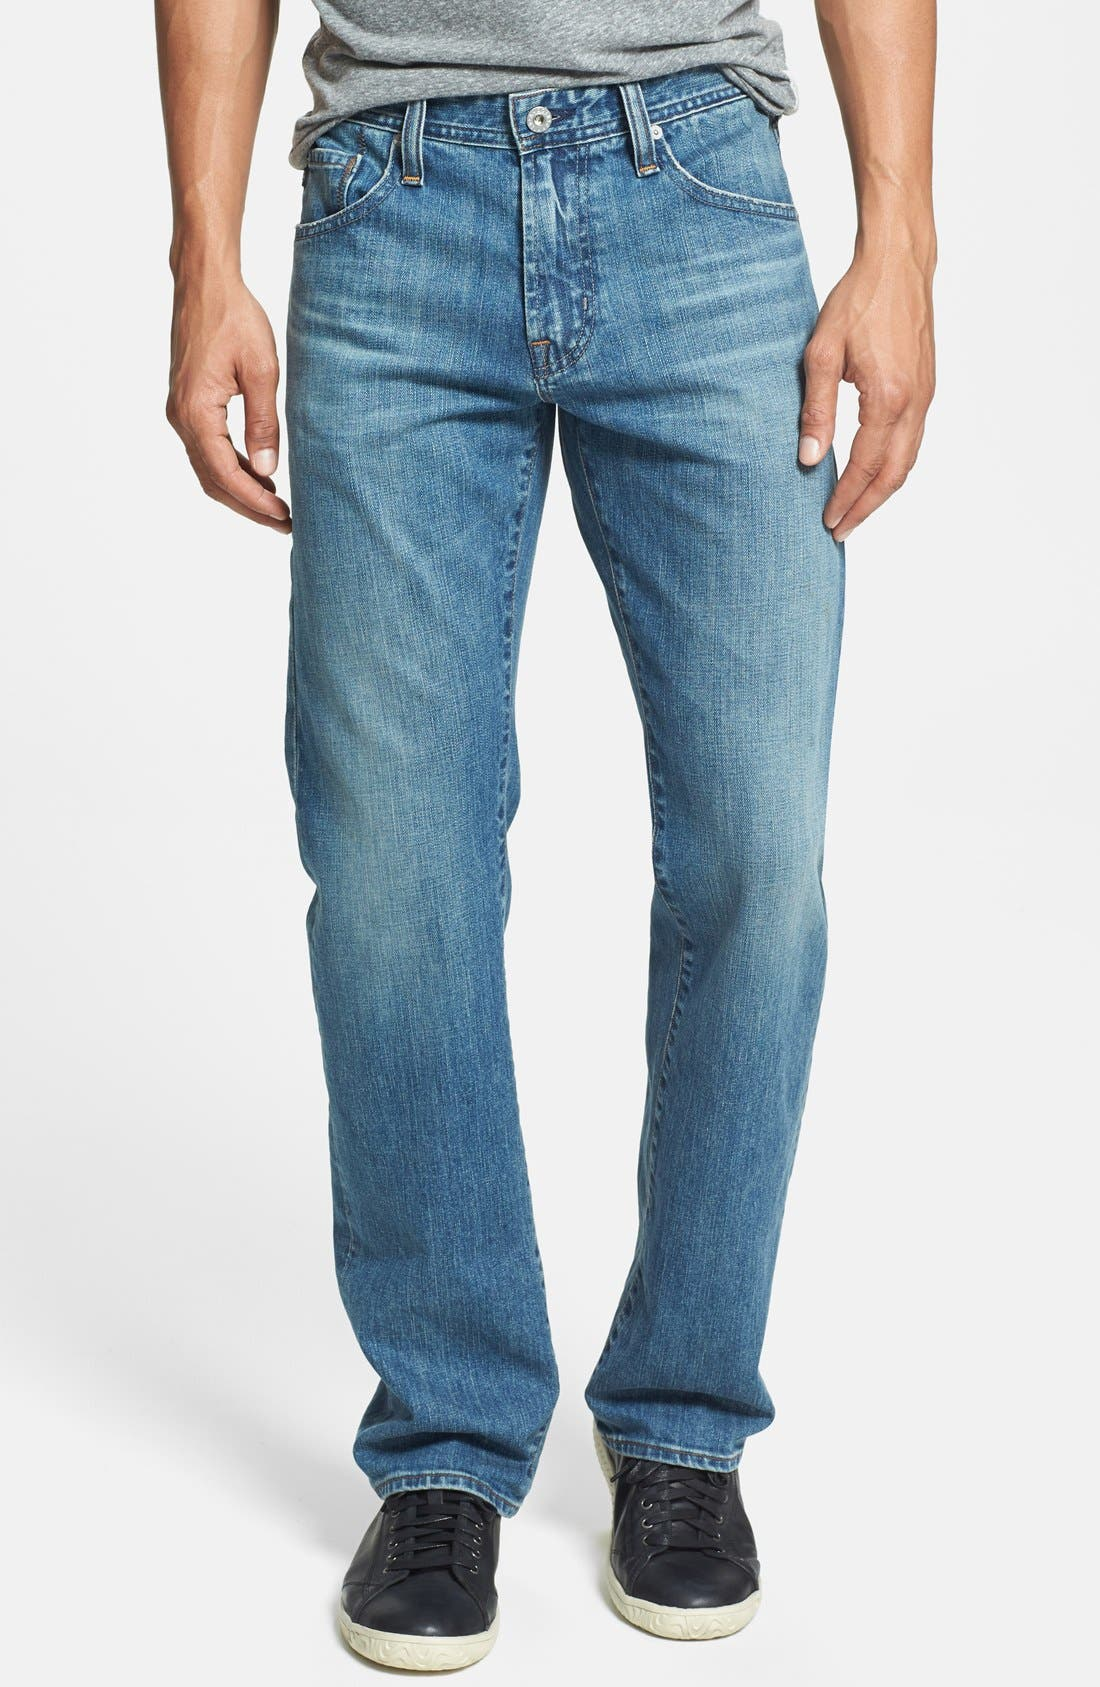 Alternate Image 1 Selected - AG 'Protégé' Straight Leg Jeans (Subterranean)